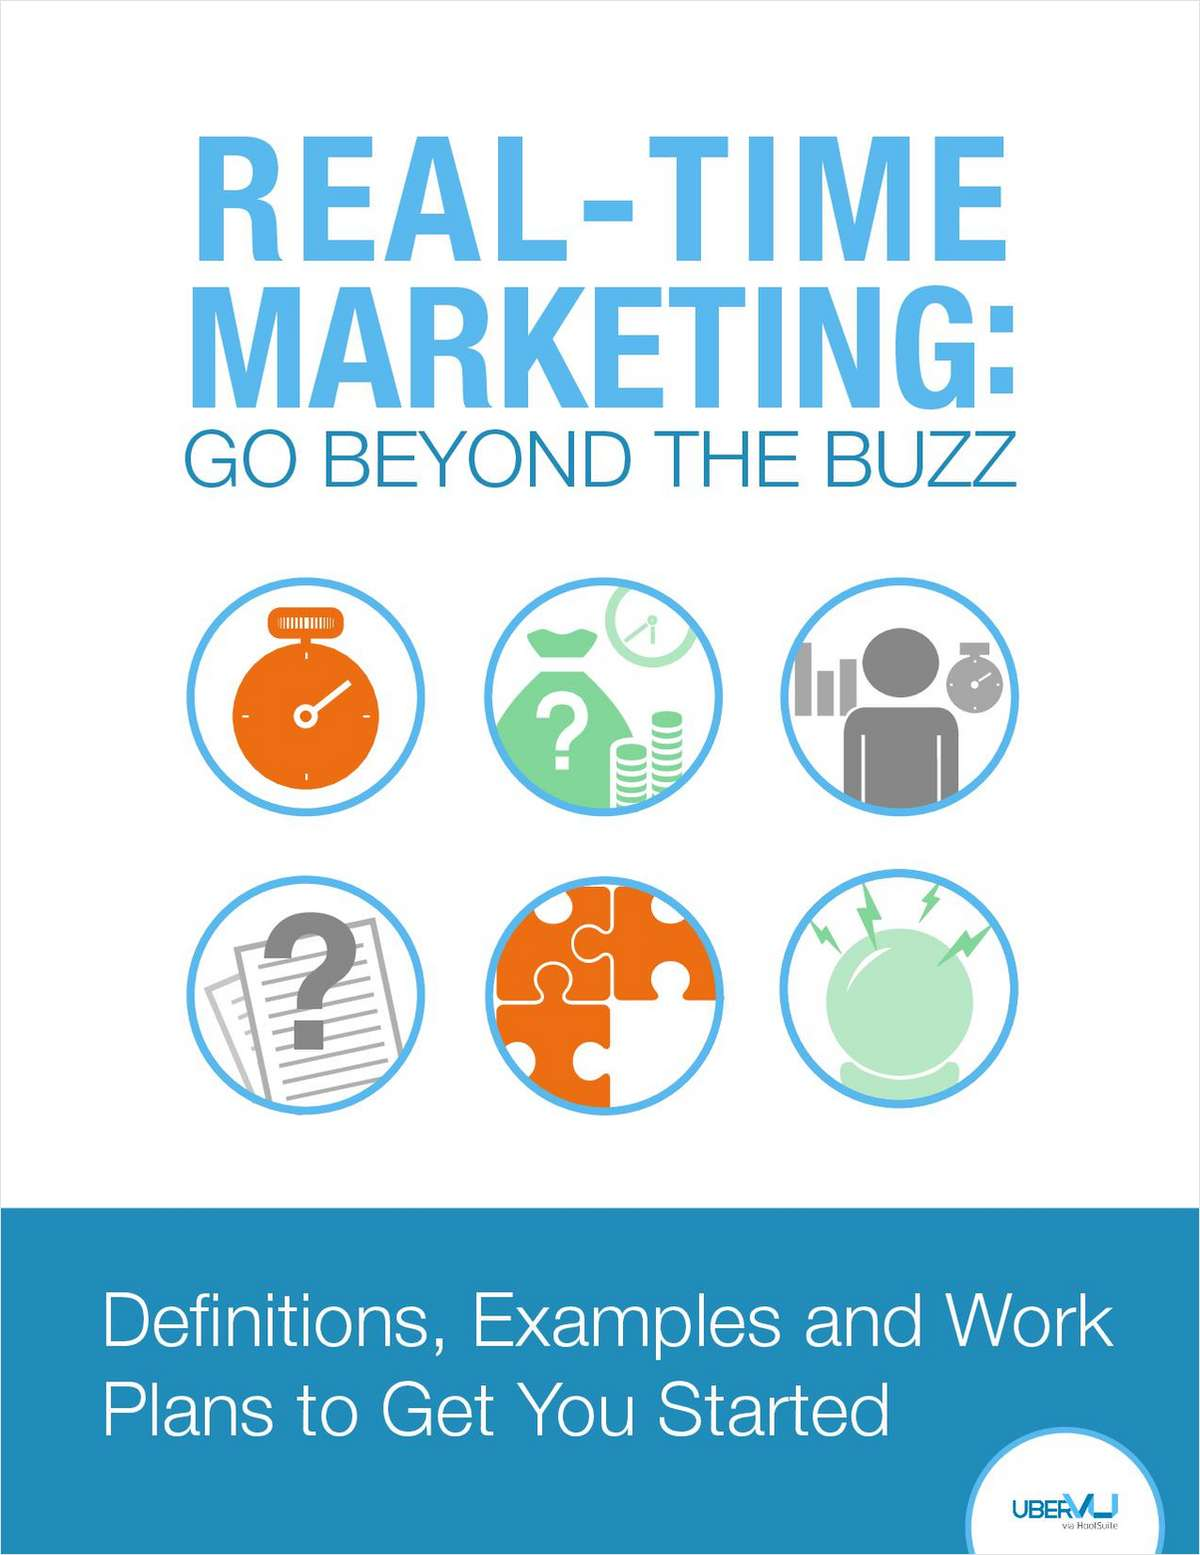 Real-Time Marketing: Go Beyond The Buzz